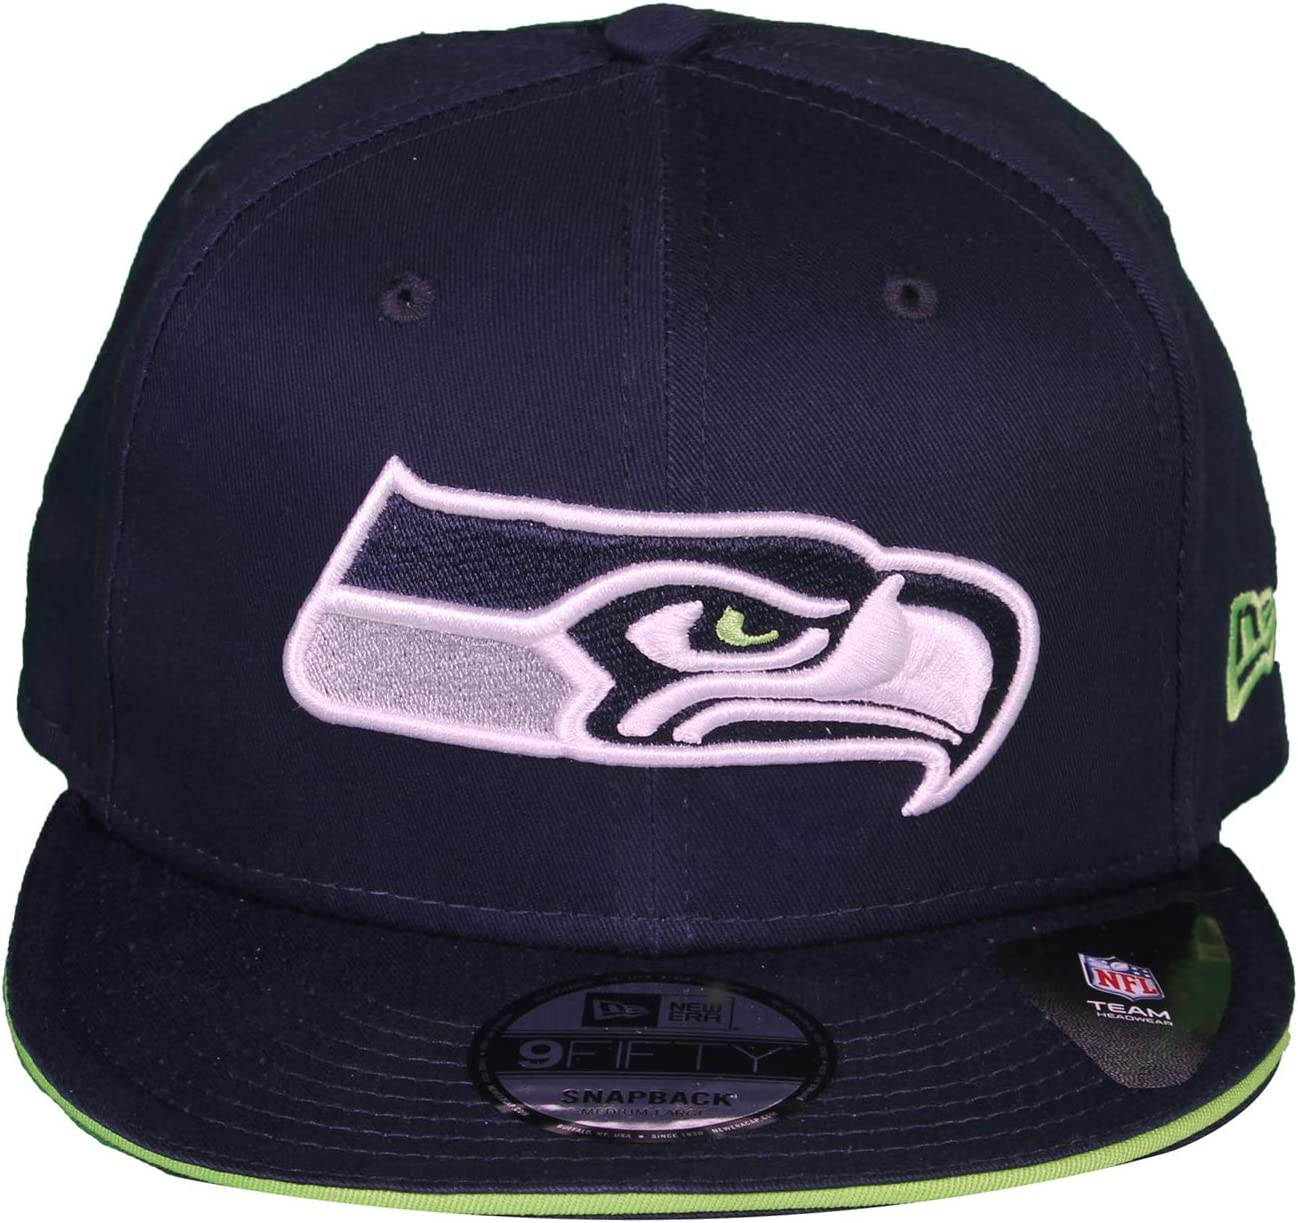 A NEW ERA Gorra 9Fifty Team Snap Patriots by Gorragorra de Beisbol ...